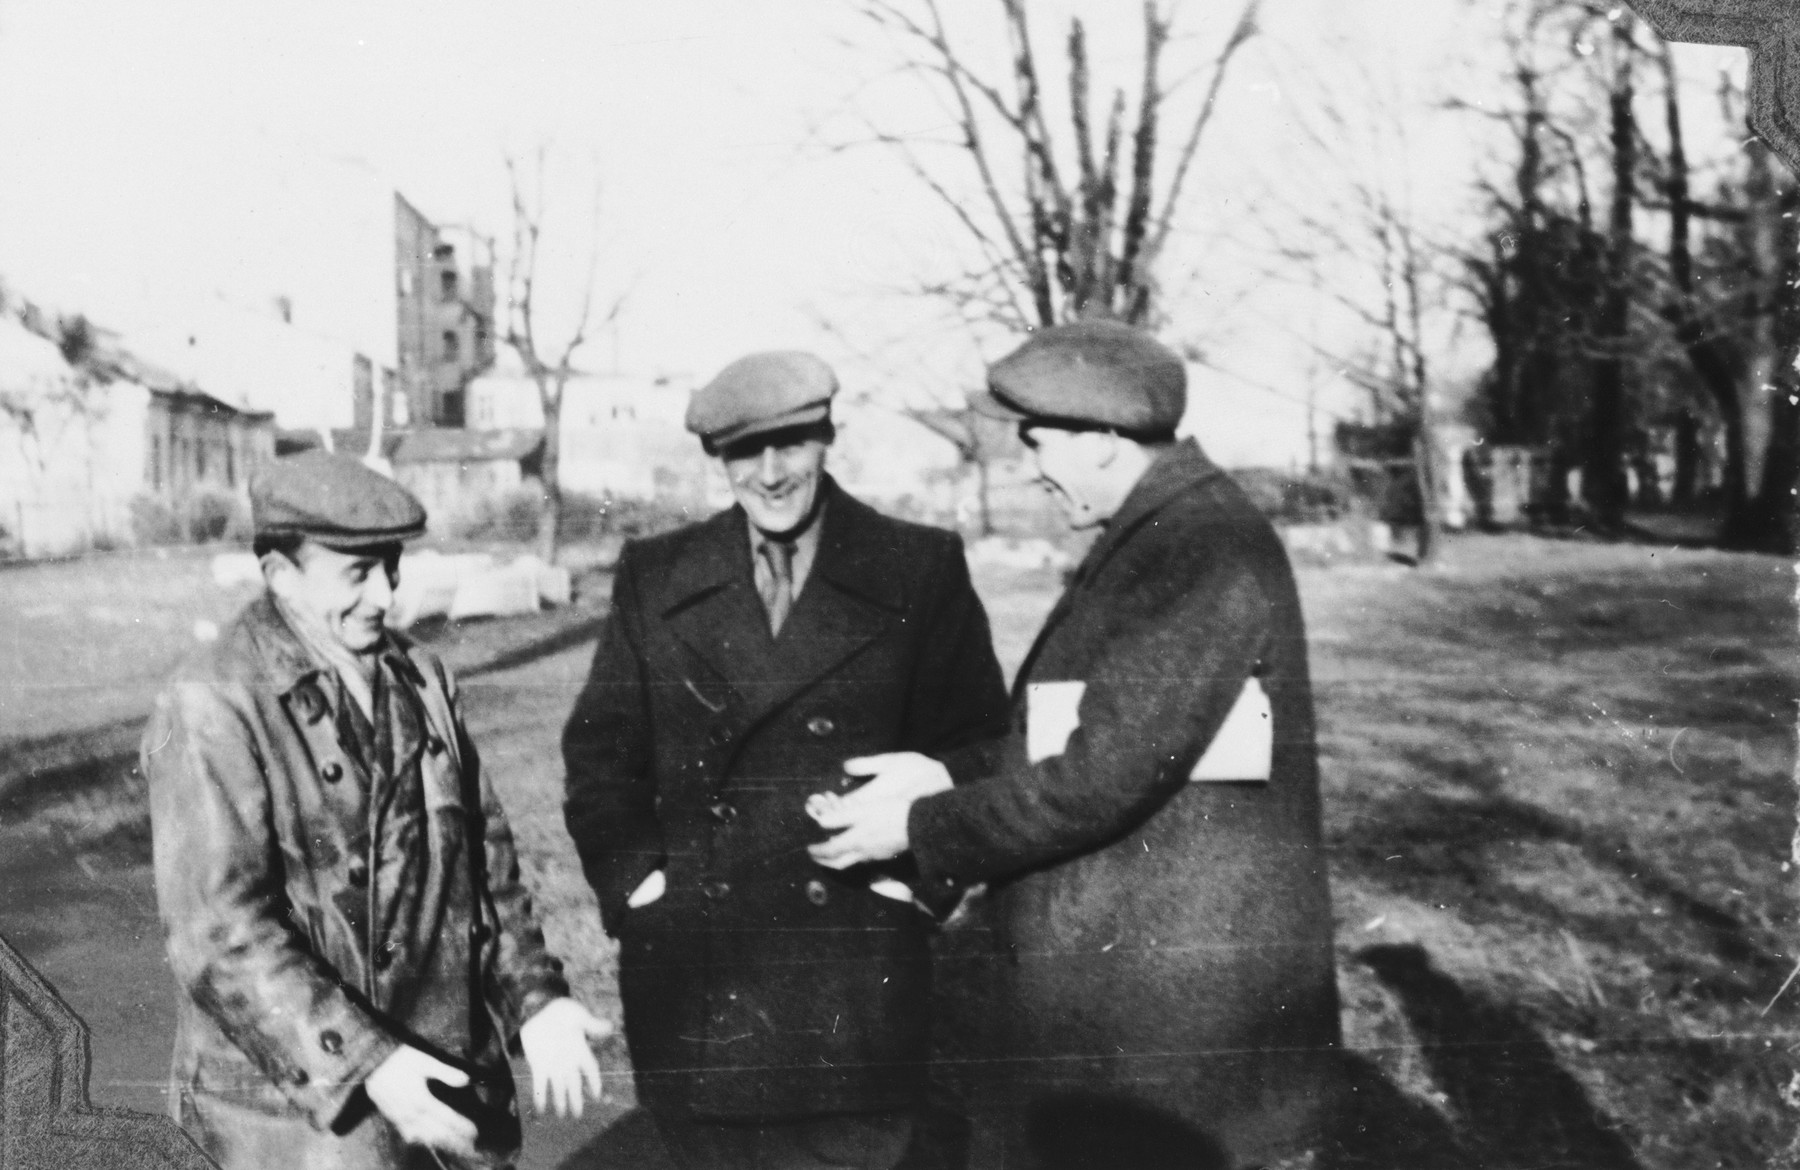 Three Jewish friends converse outside in Kielce.  Among those pictured is Zygmunt Godzinski (right).